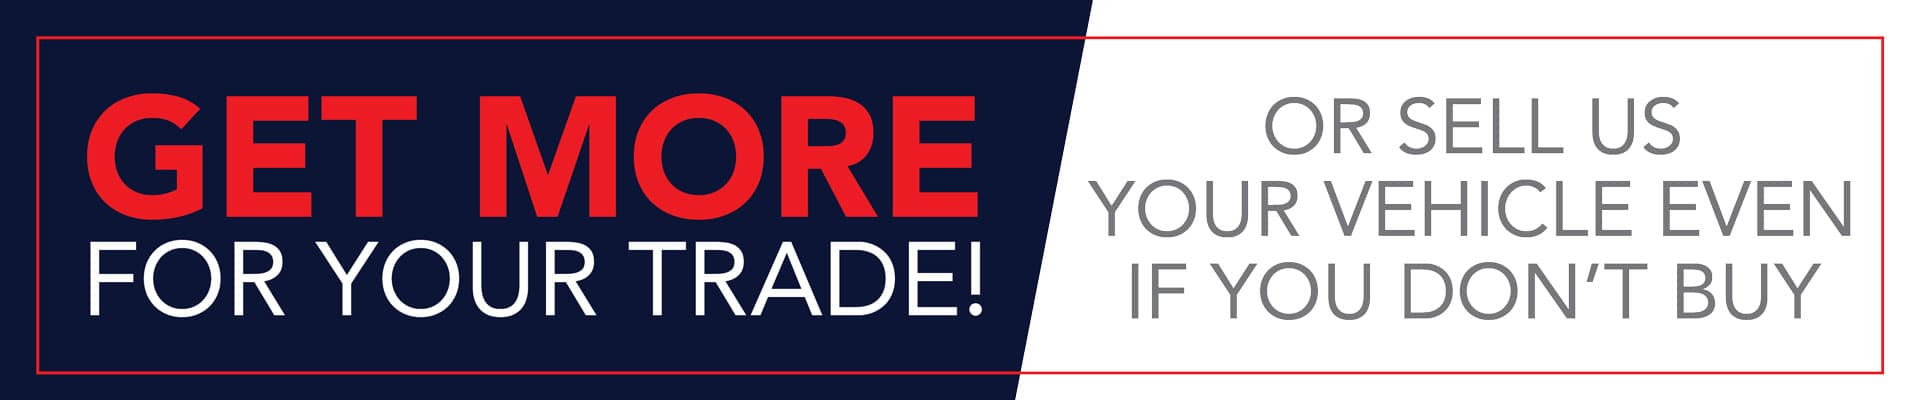 Get more for your trade Holiday Automotive